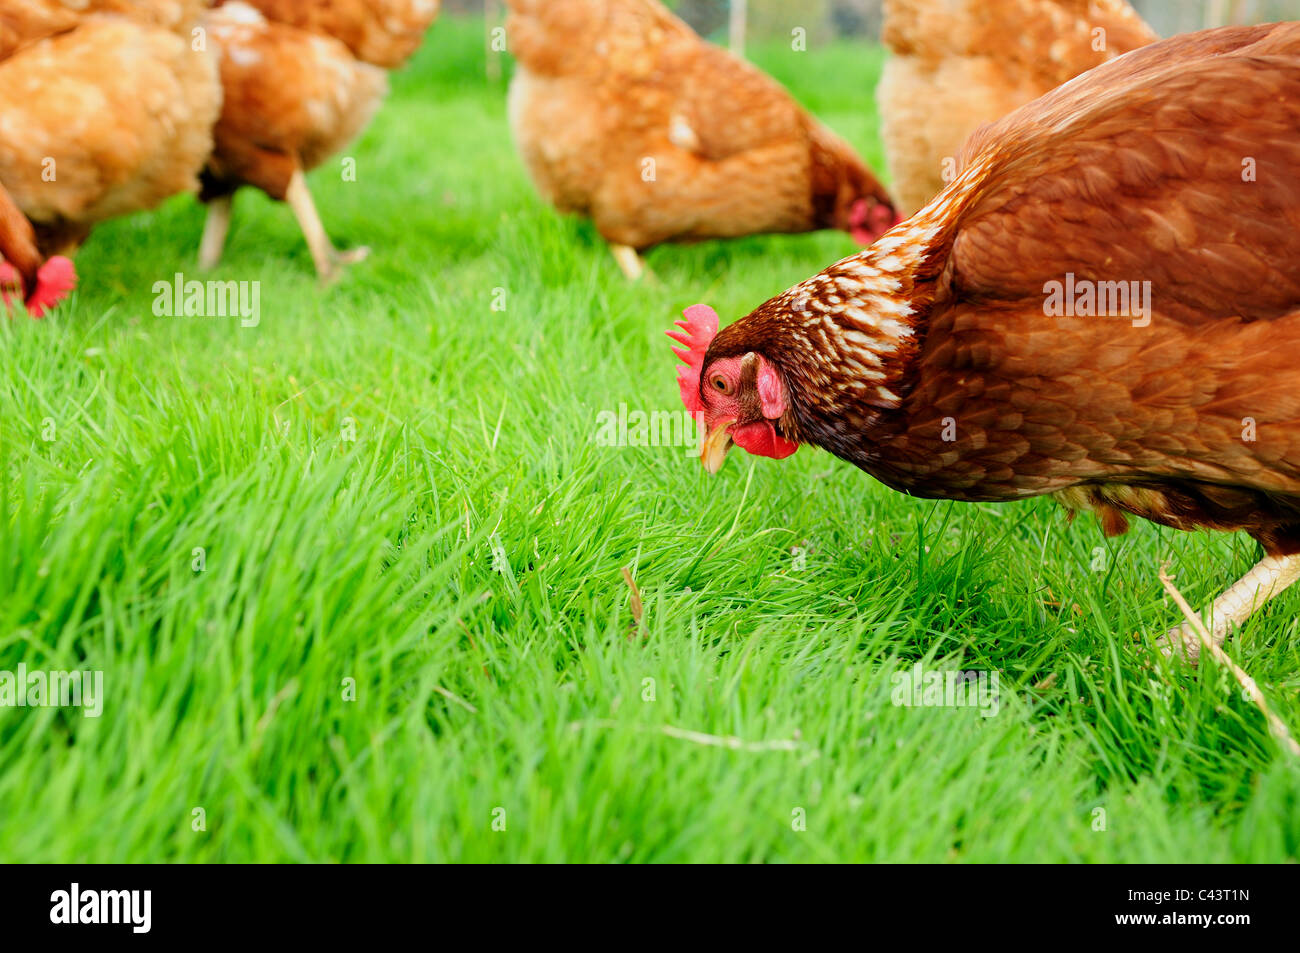 Hens Chicken's Poultry.(Gallus gallus domesticus). - Stock Image